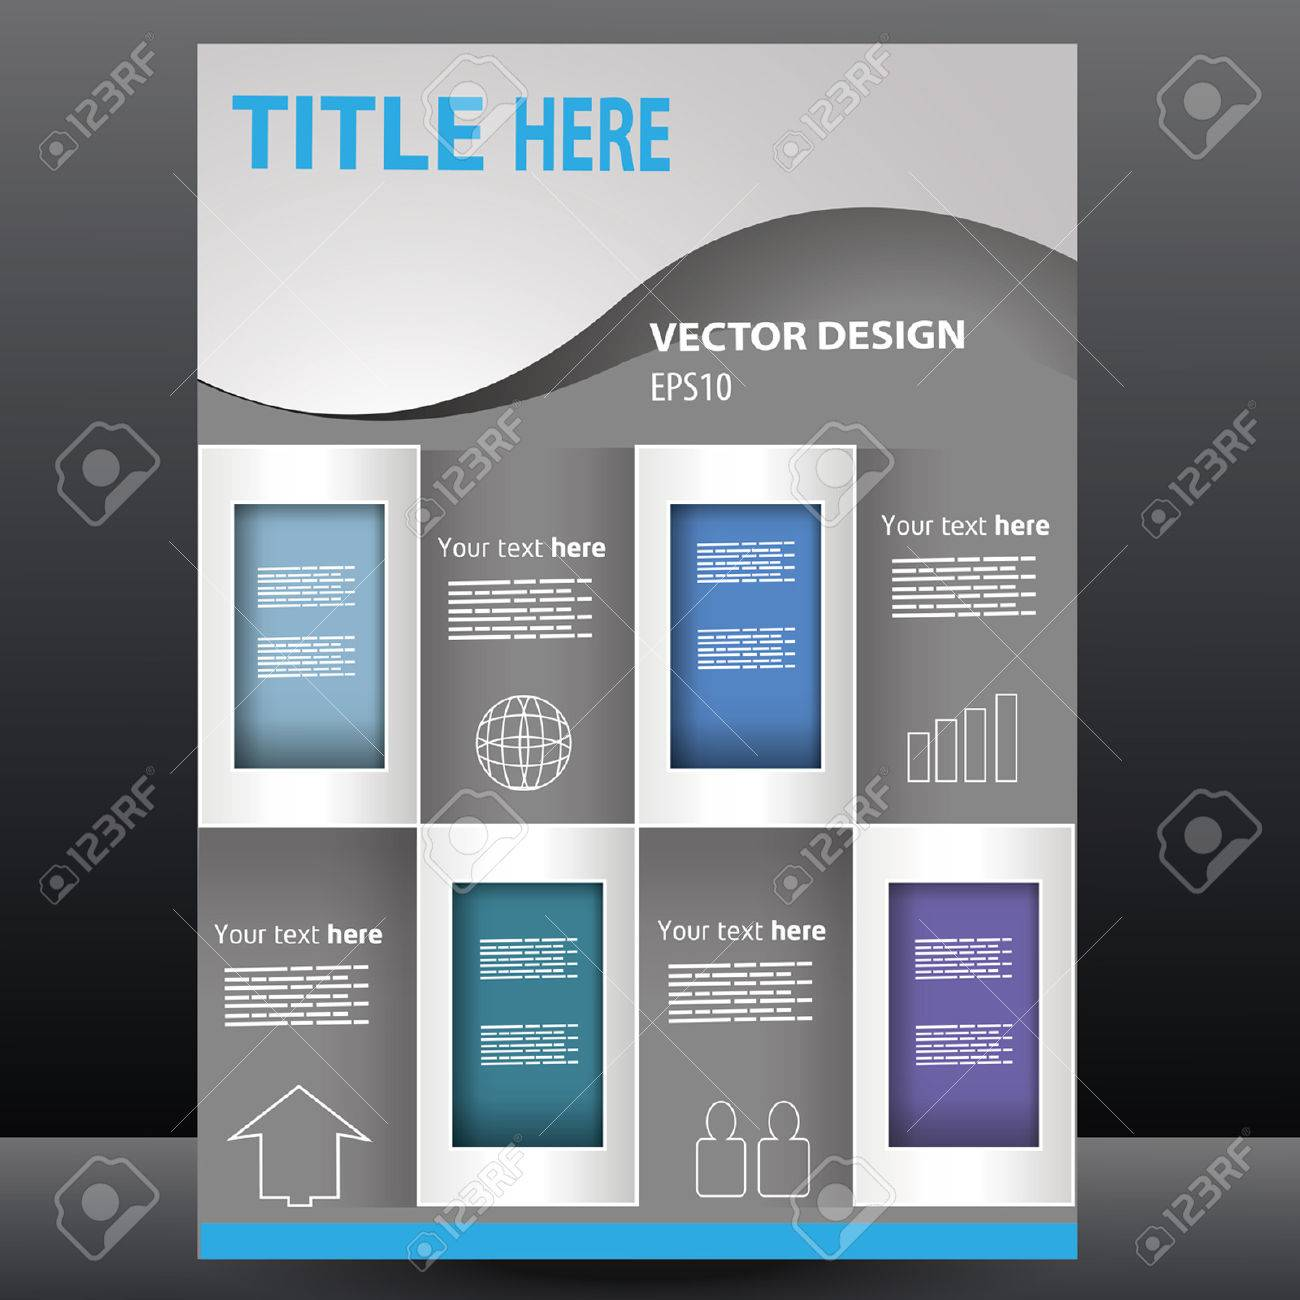 powerpoint a1 poster template images - templates example free download, Powerpoint templates